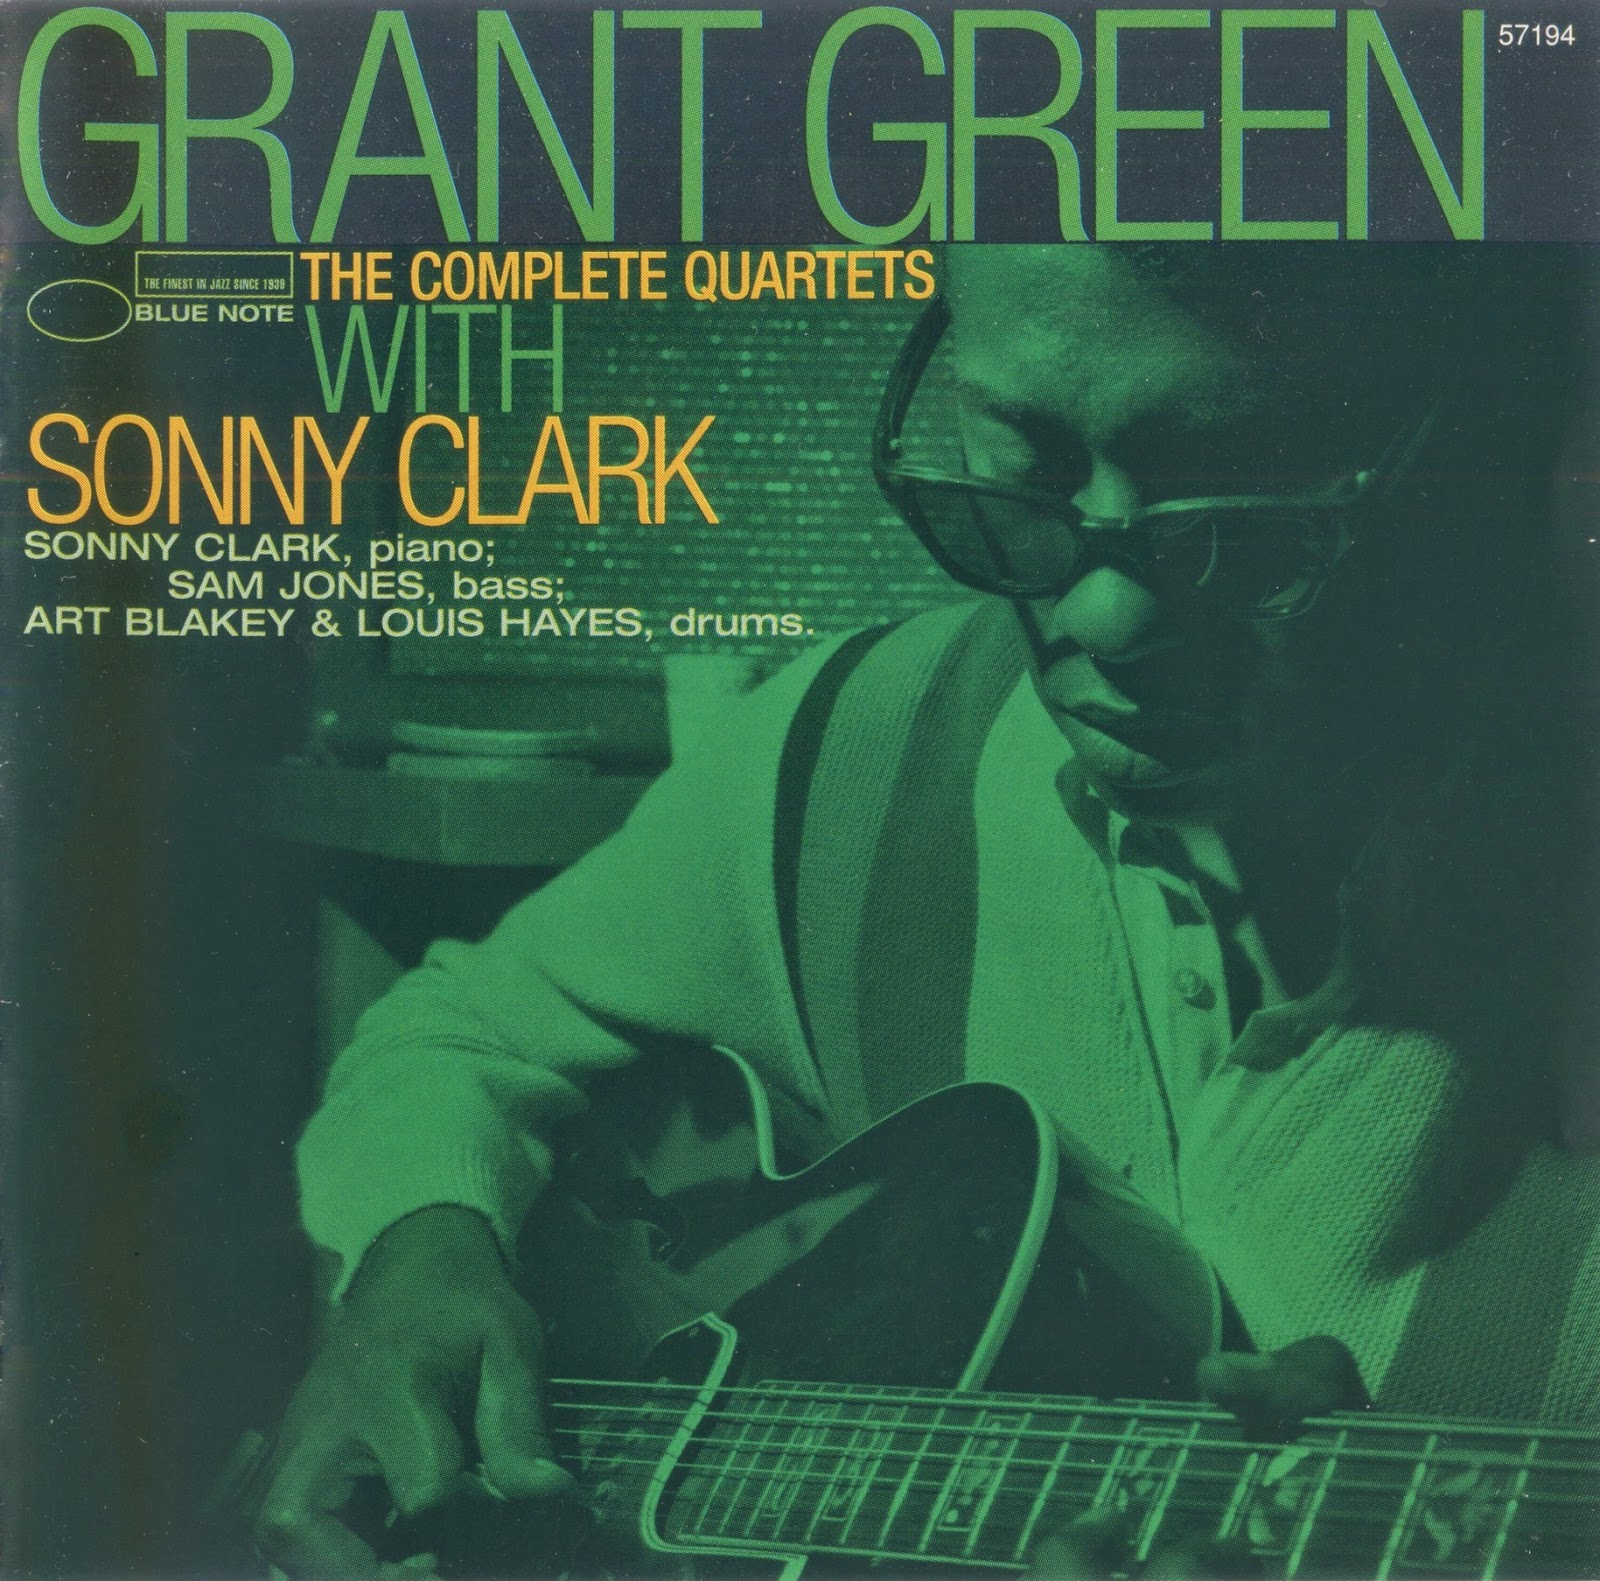 GRANT GREEN - The Complete Quartets With Sonny Clark cover